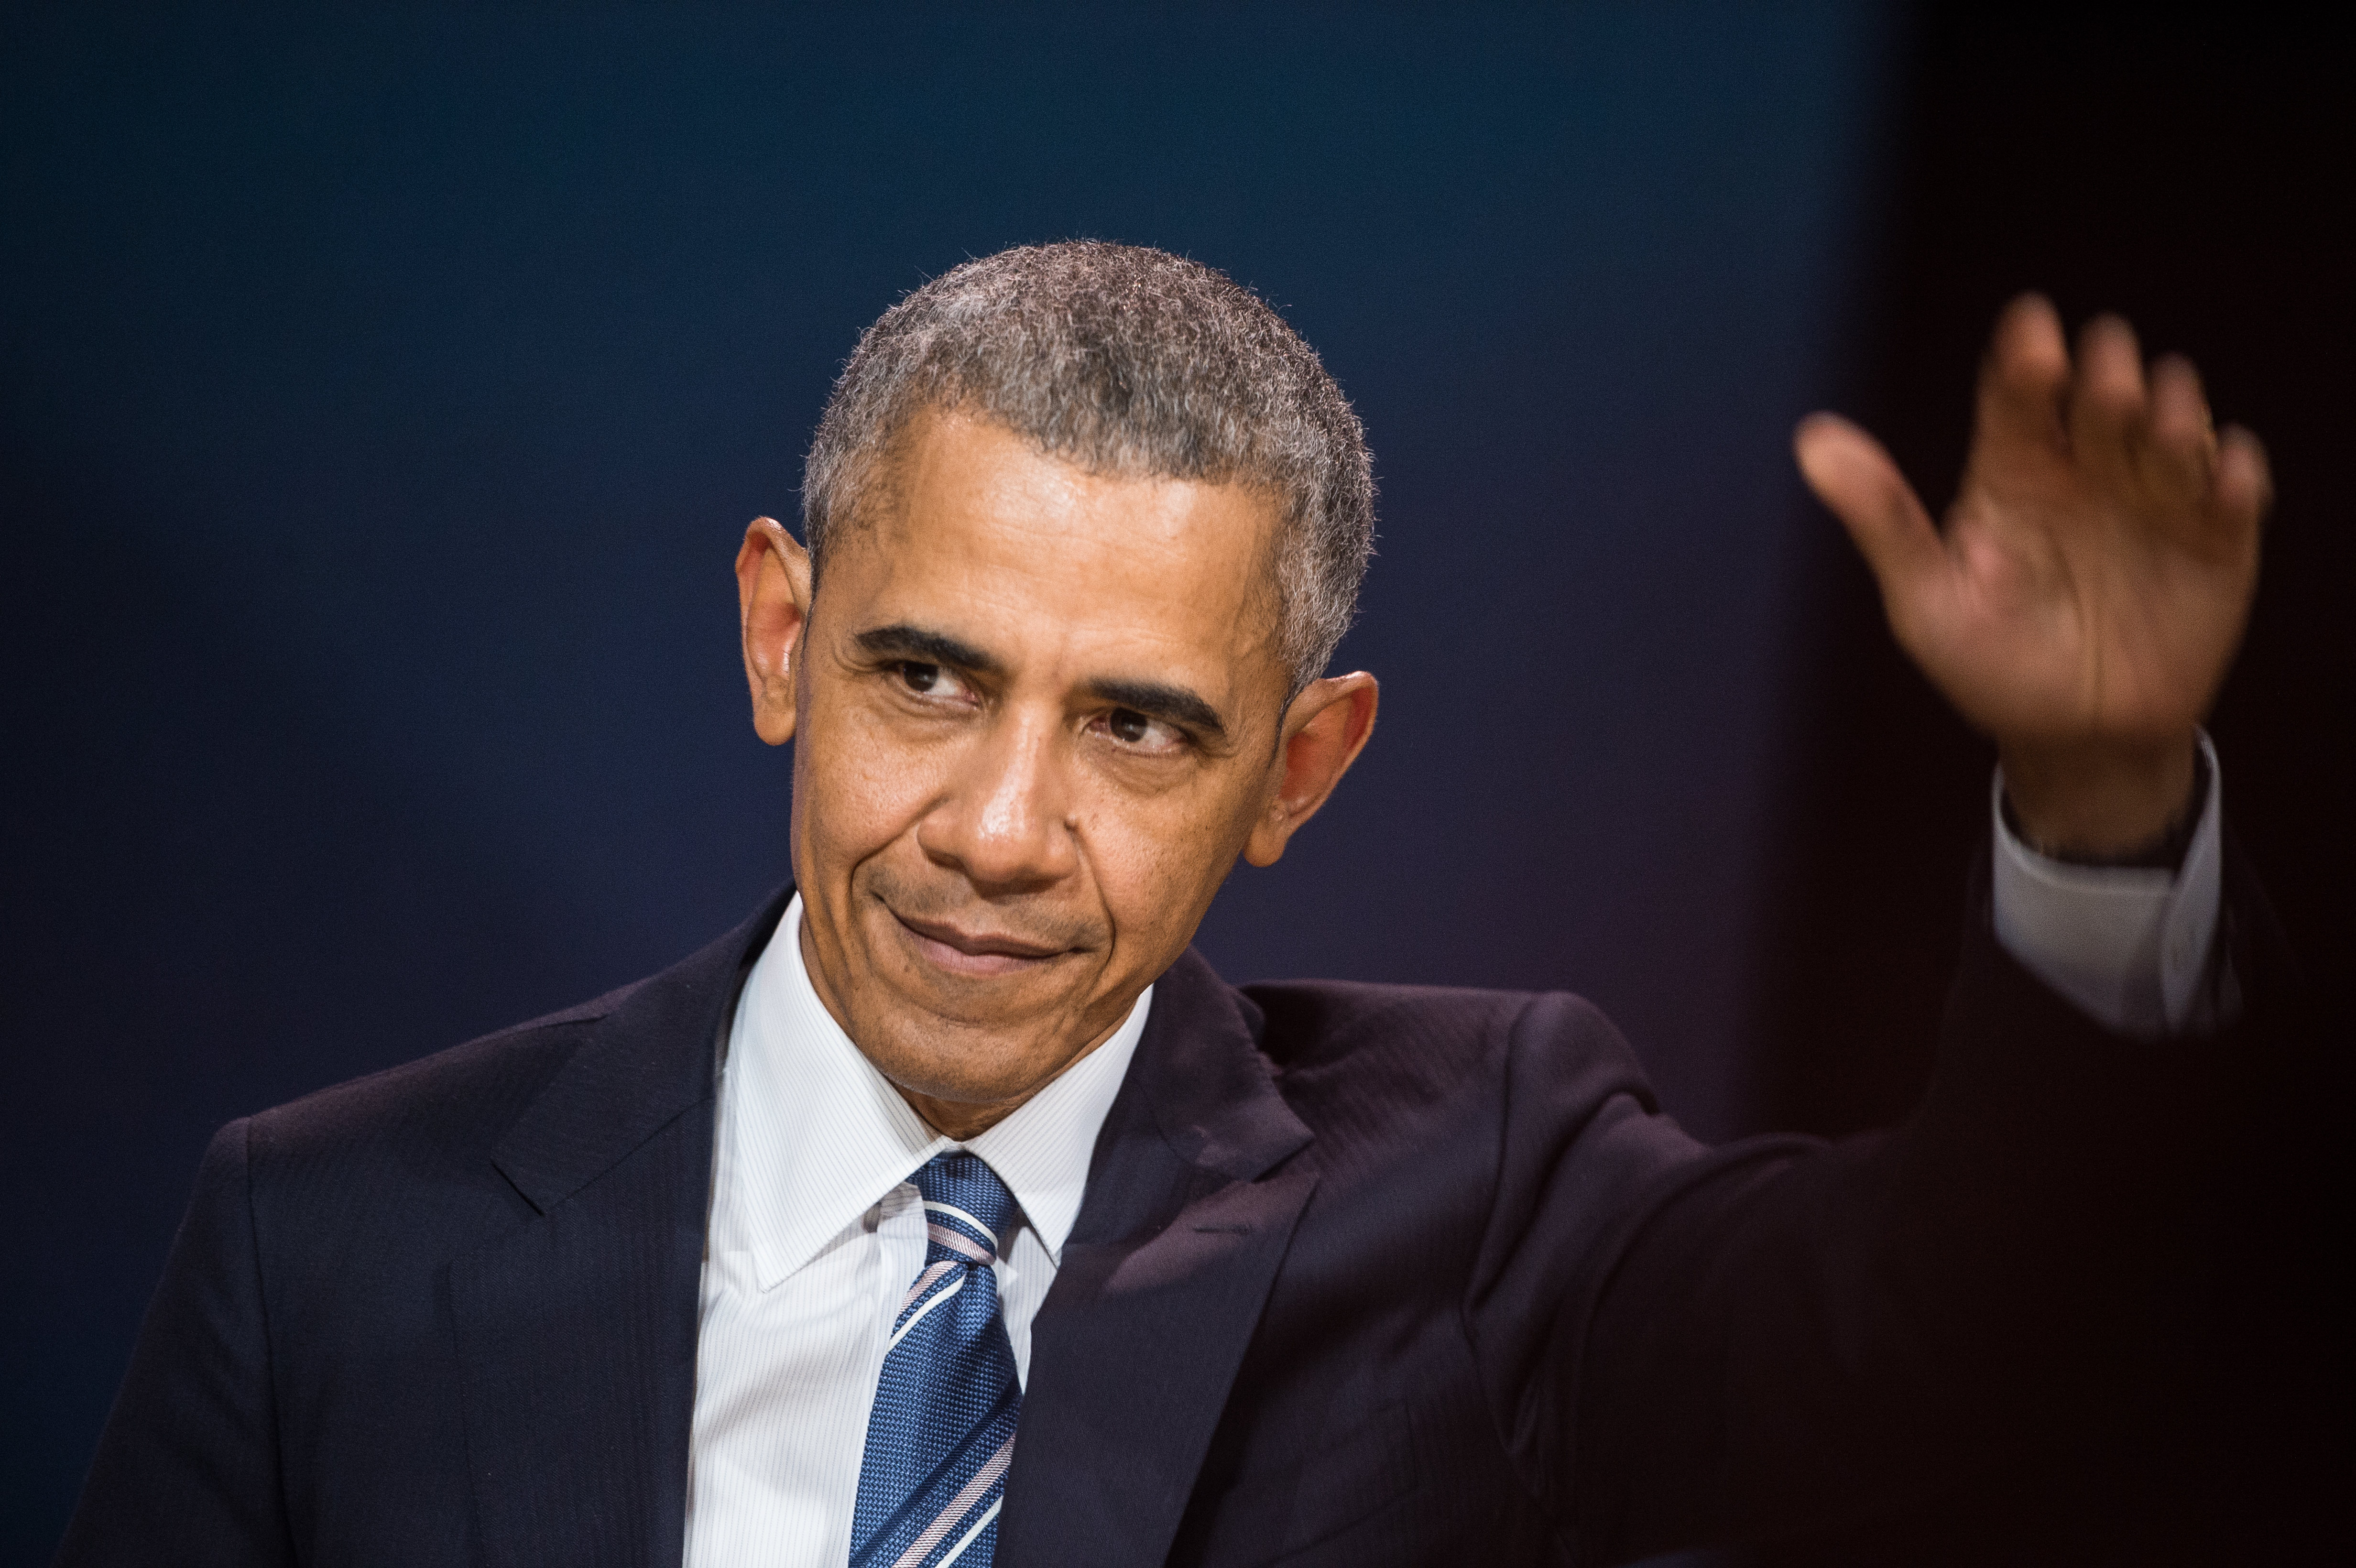 Barack Obama Has Been Voted 'Most Admired Man In The World', 10 Years Running